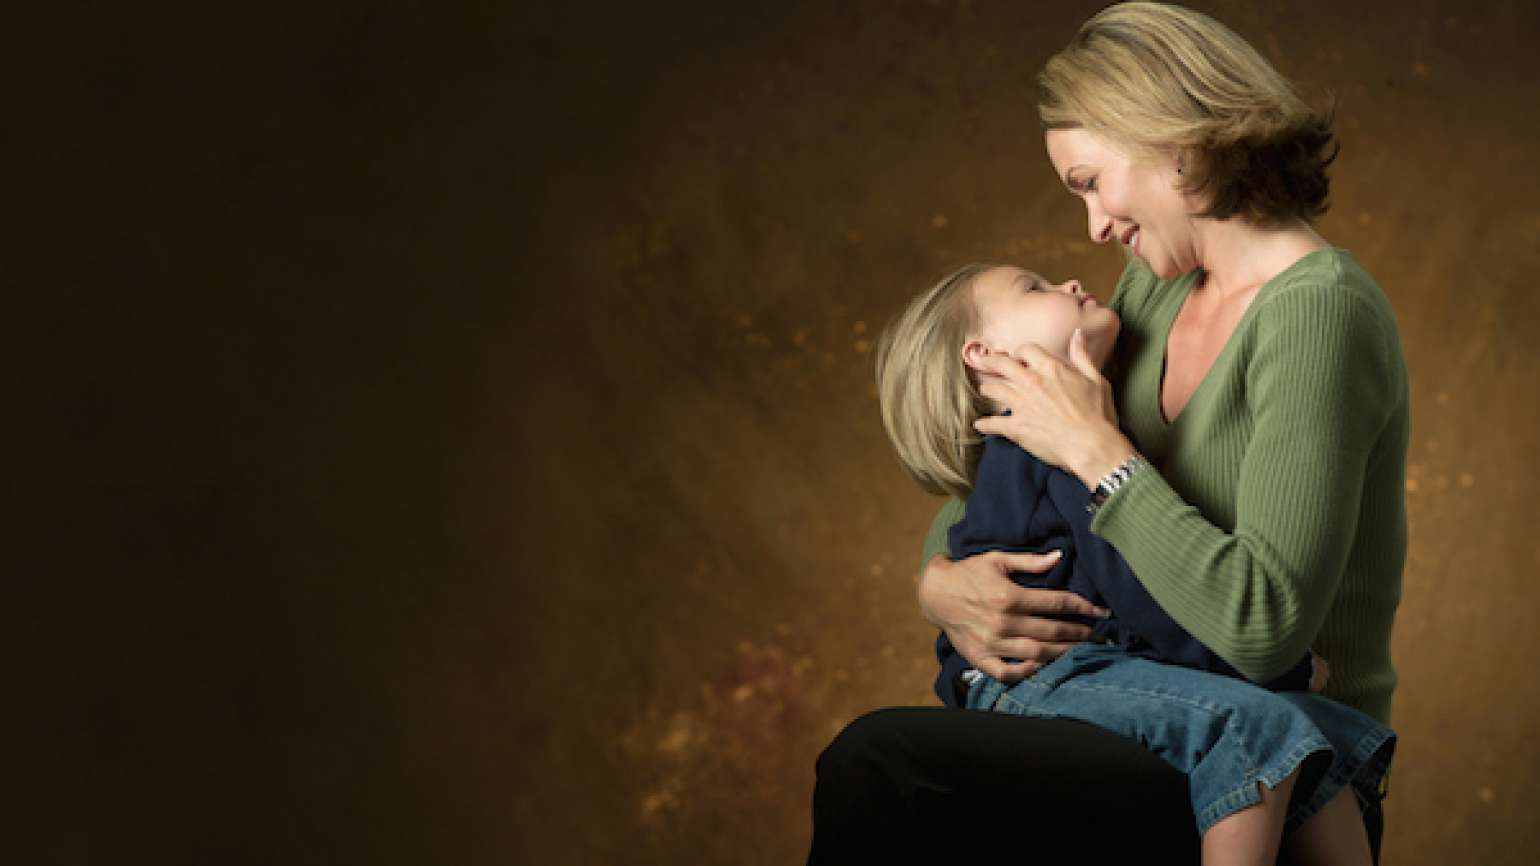 As a mother is close to her child, God wants to be close to us.